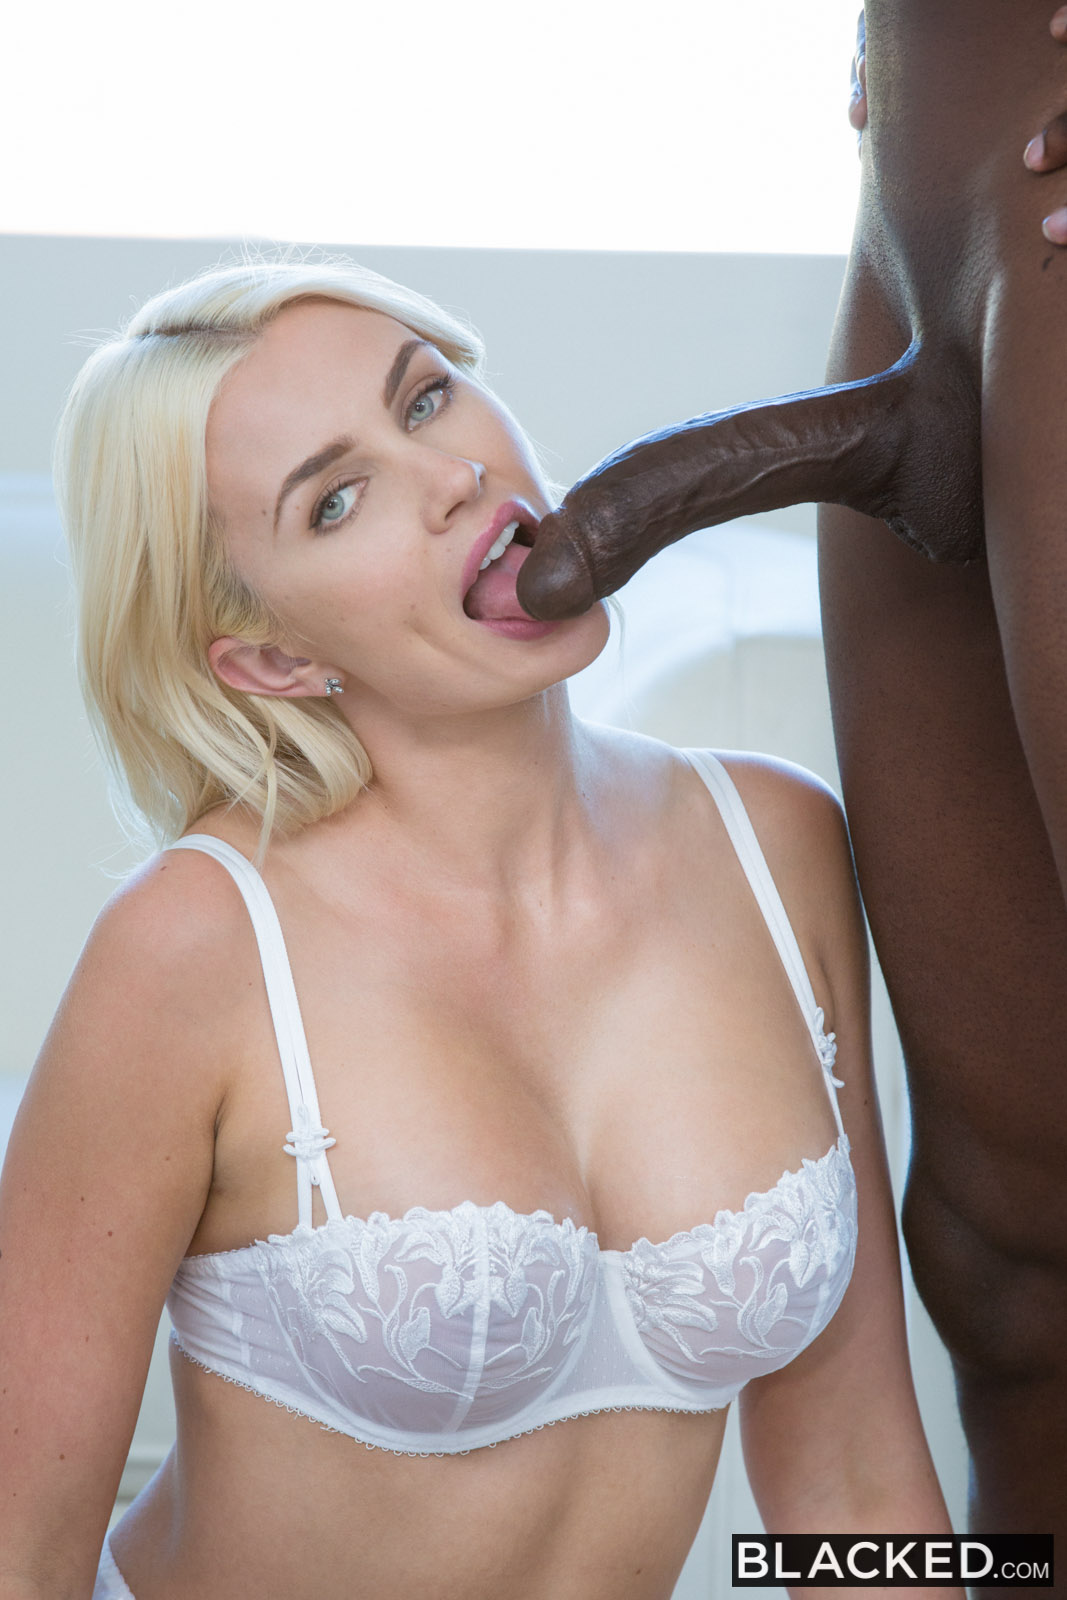 Trophy wife and black tosser with erection problems 2